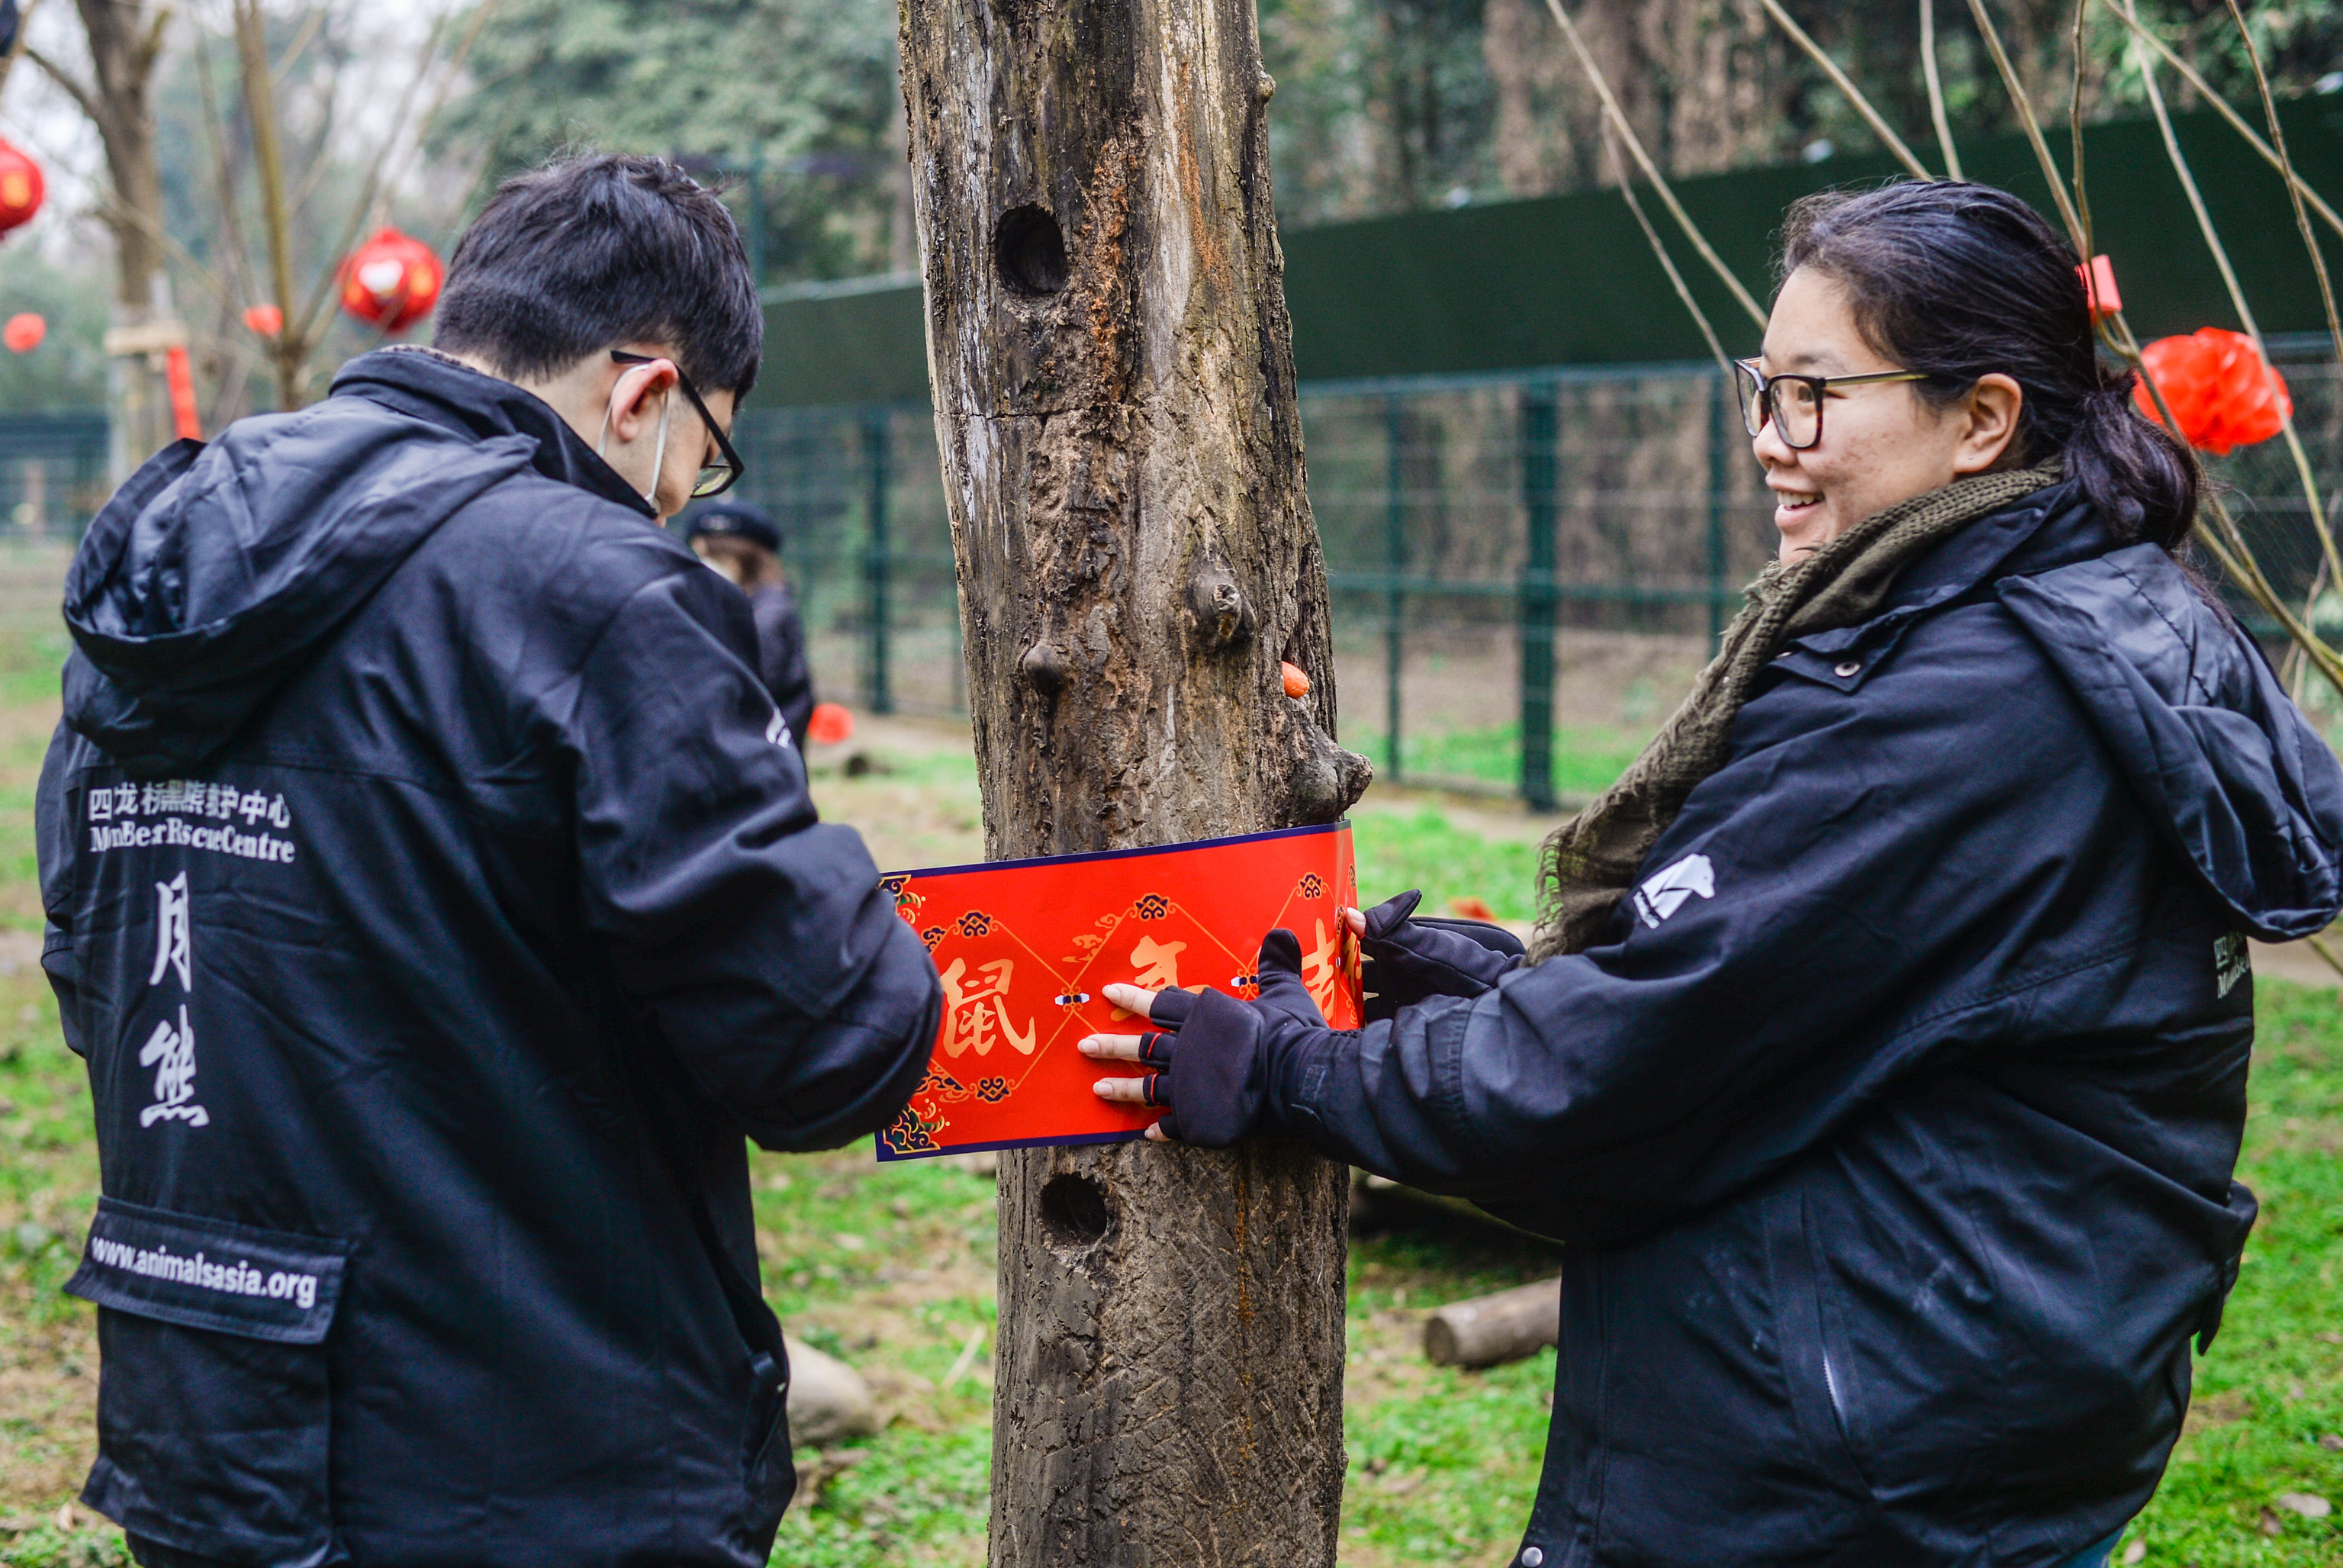 Preparations for Lunar New Year at the Chengdu Rescue Centre